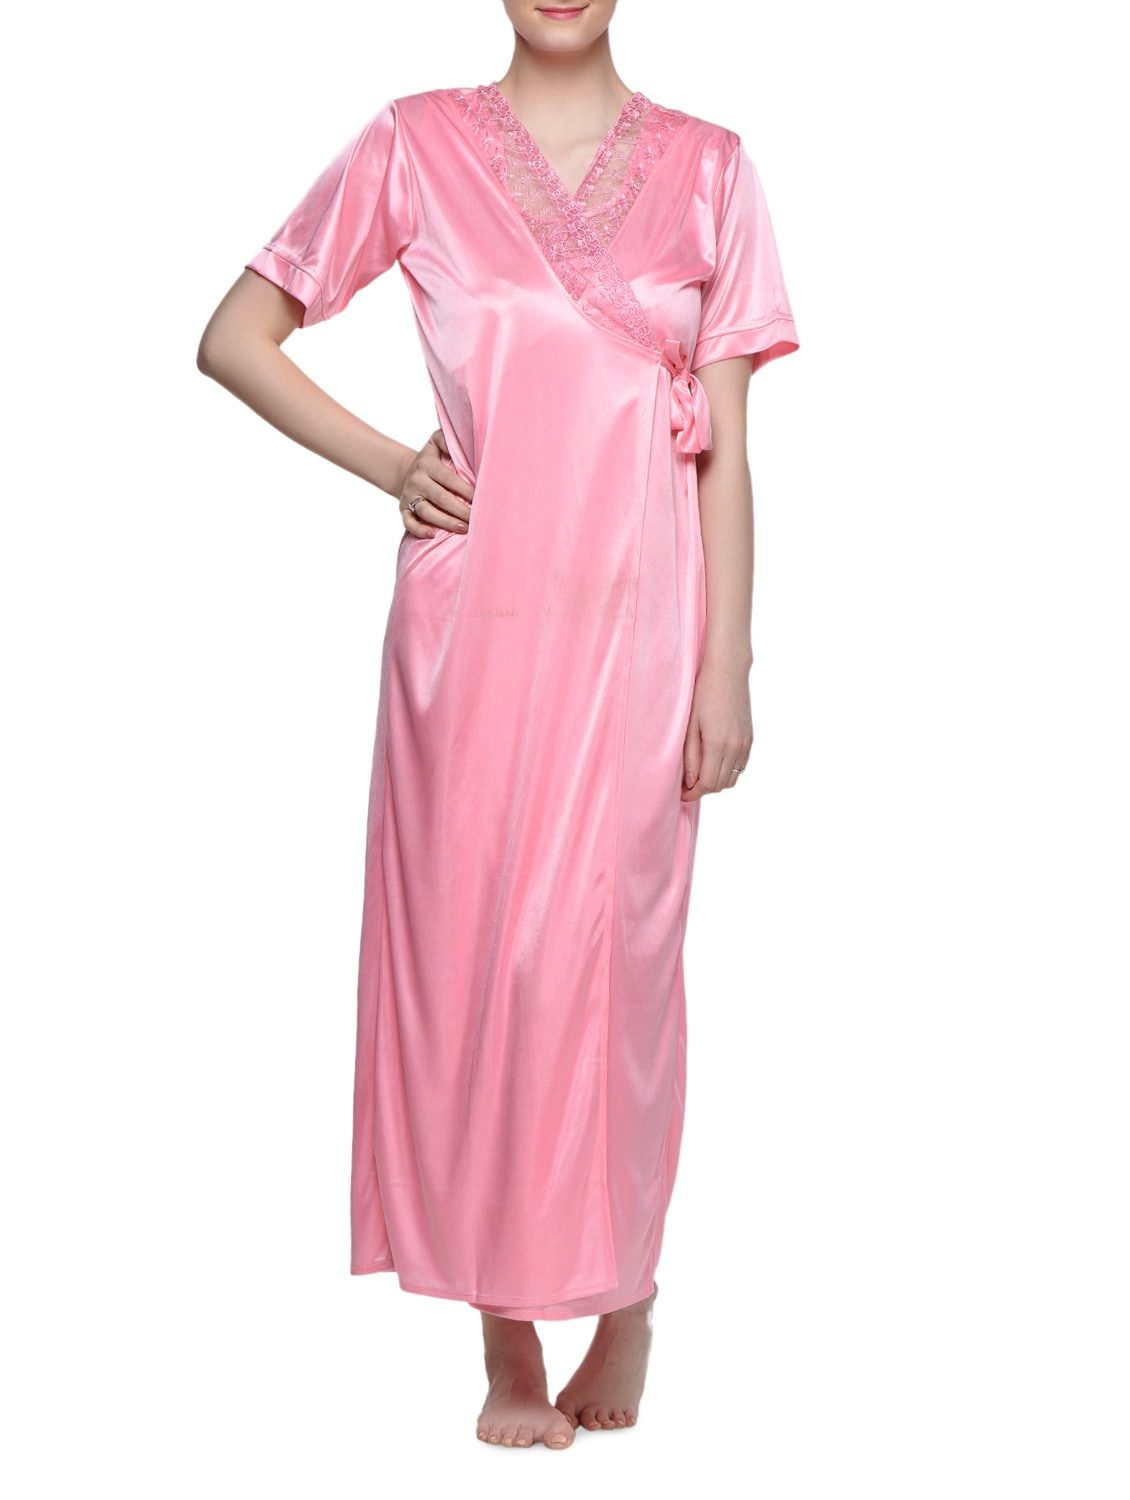 eaa35b0da9 Buy 4 Pieces Satin Nightwear Set by Clovia - Online shopping for Nightwear  in India